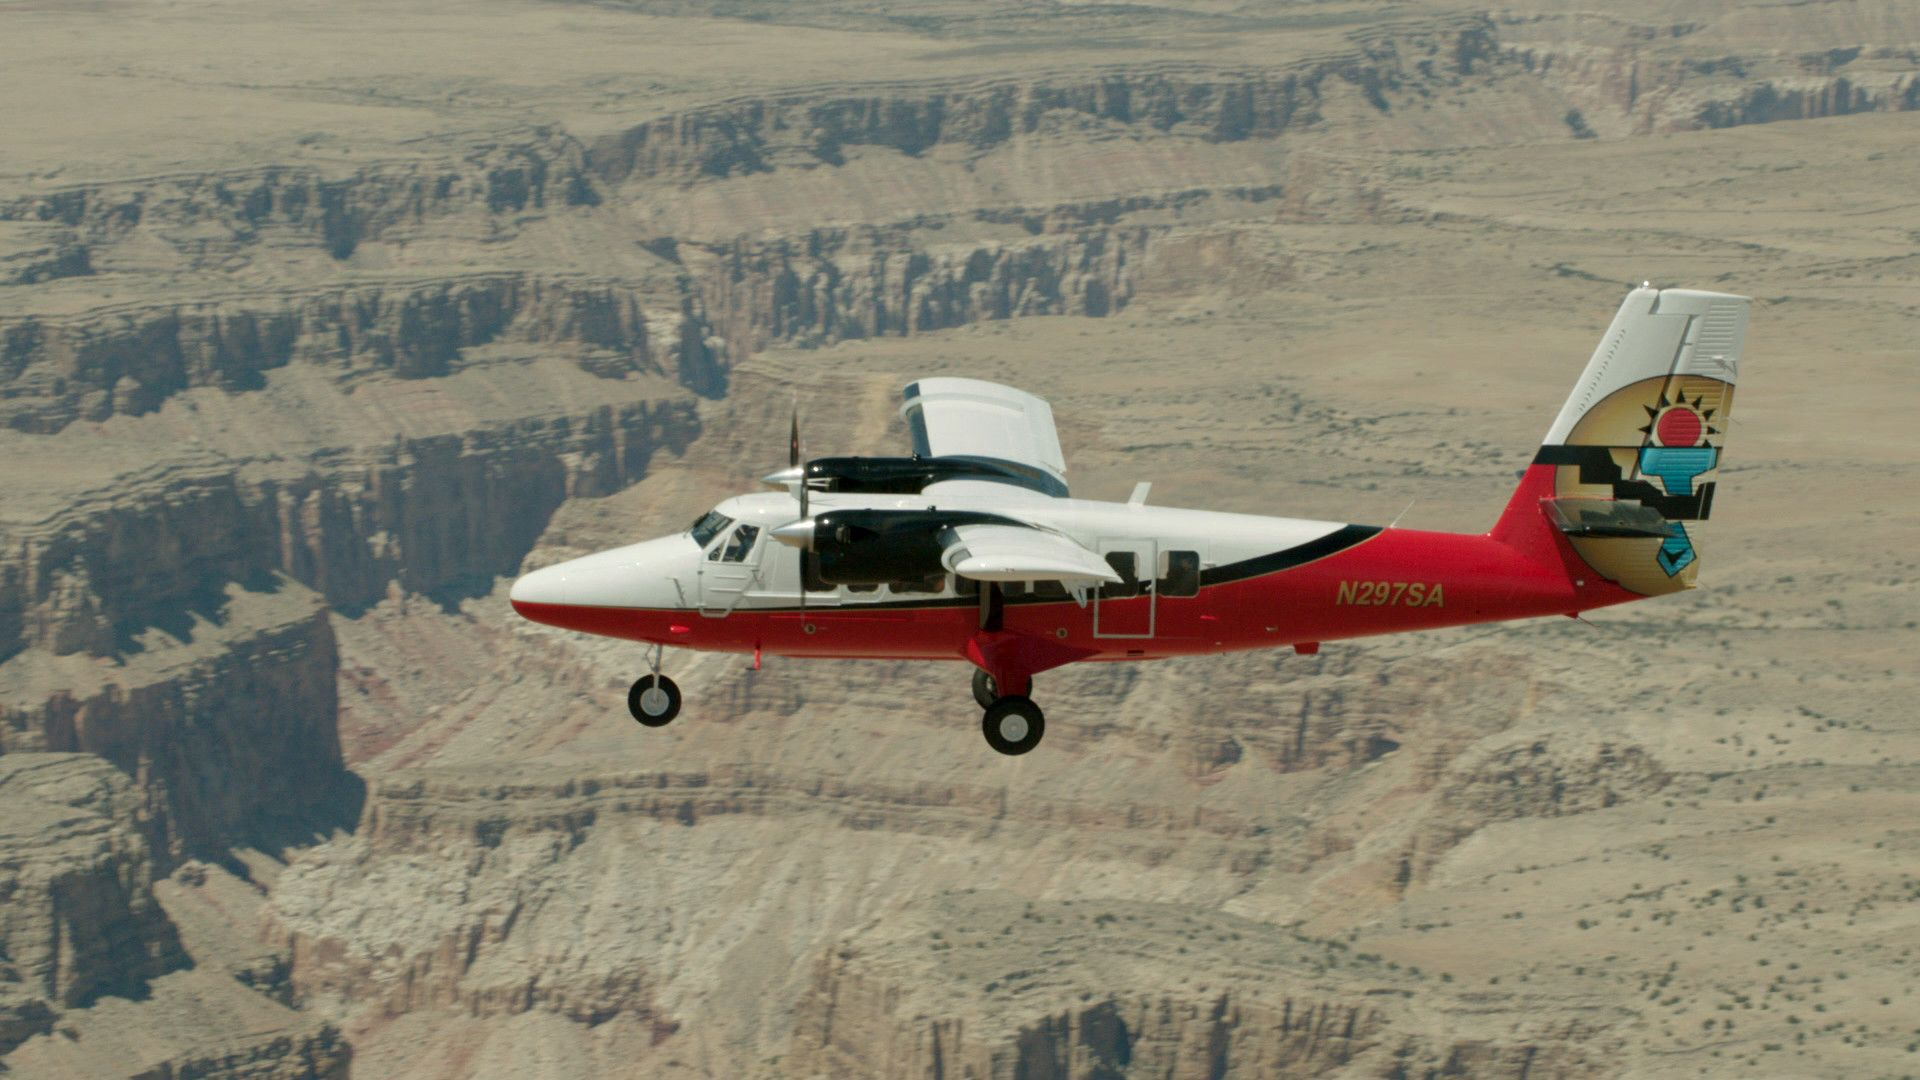 Twin otter airplane flying above the desert landscape of the grand canyon